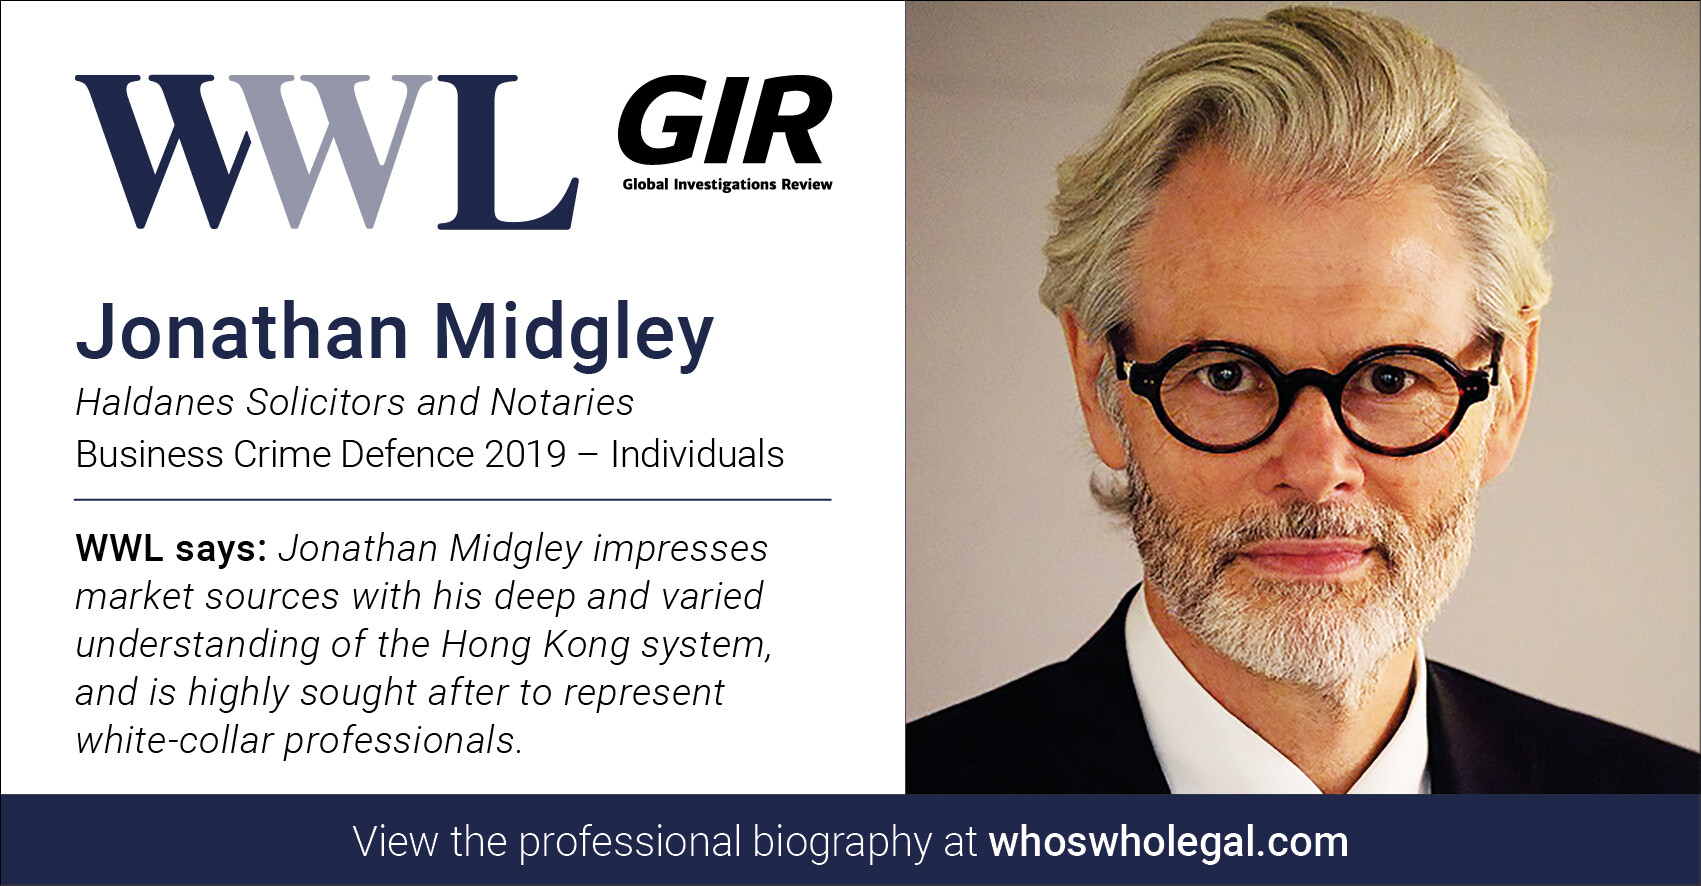 Jonathan Midgley WWL 2019 2 - Haldanes recognised in Who's Who Legal Business Crime Defence 2019